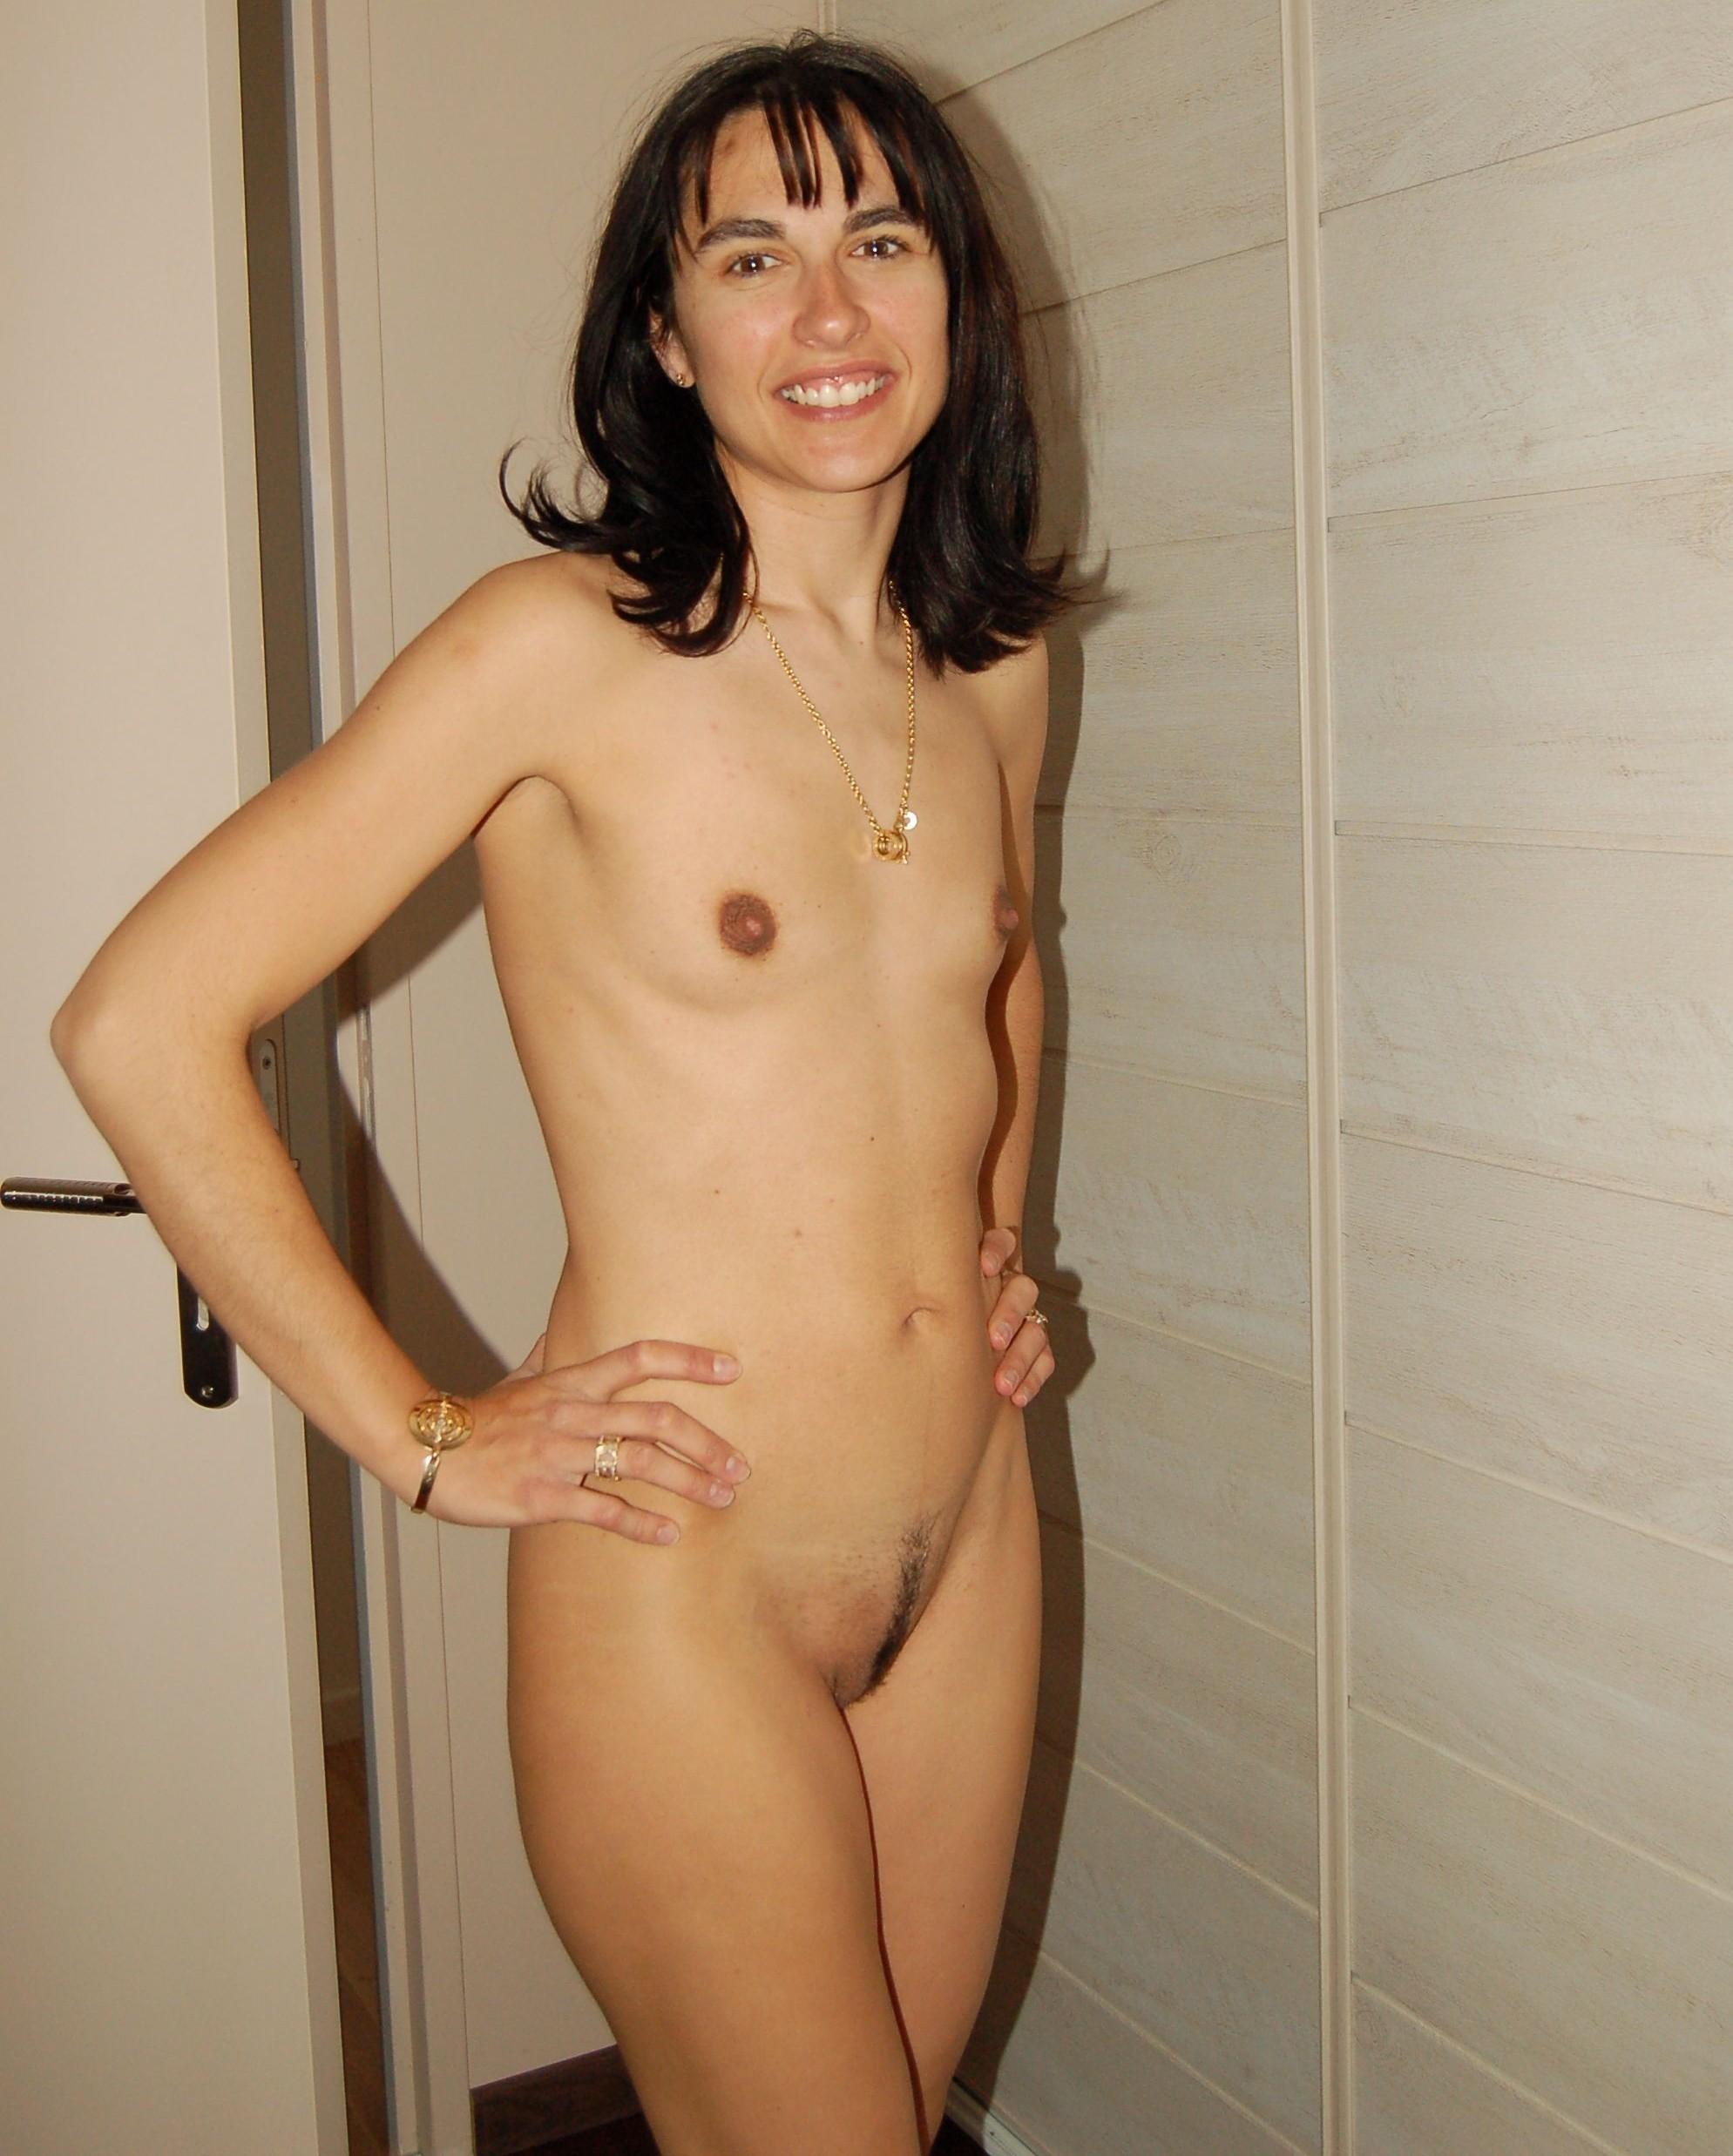 Nude women with small tits